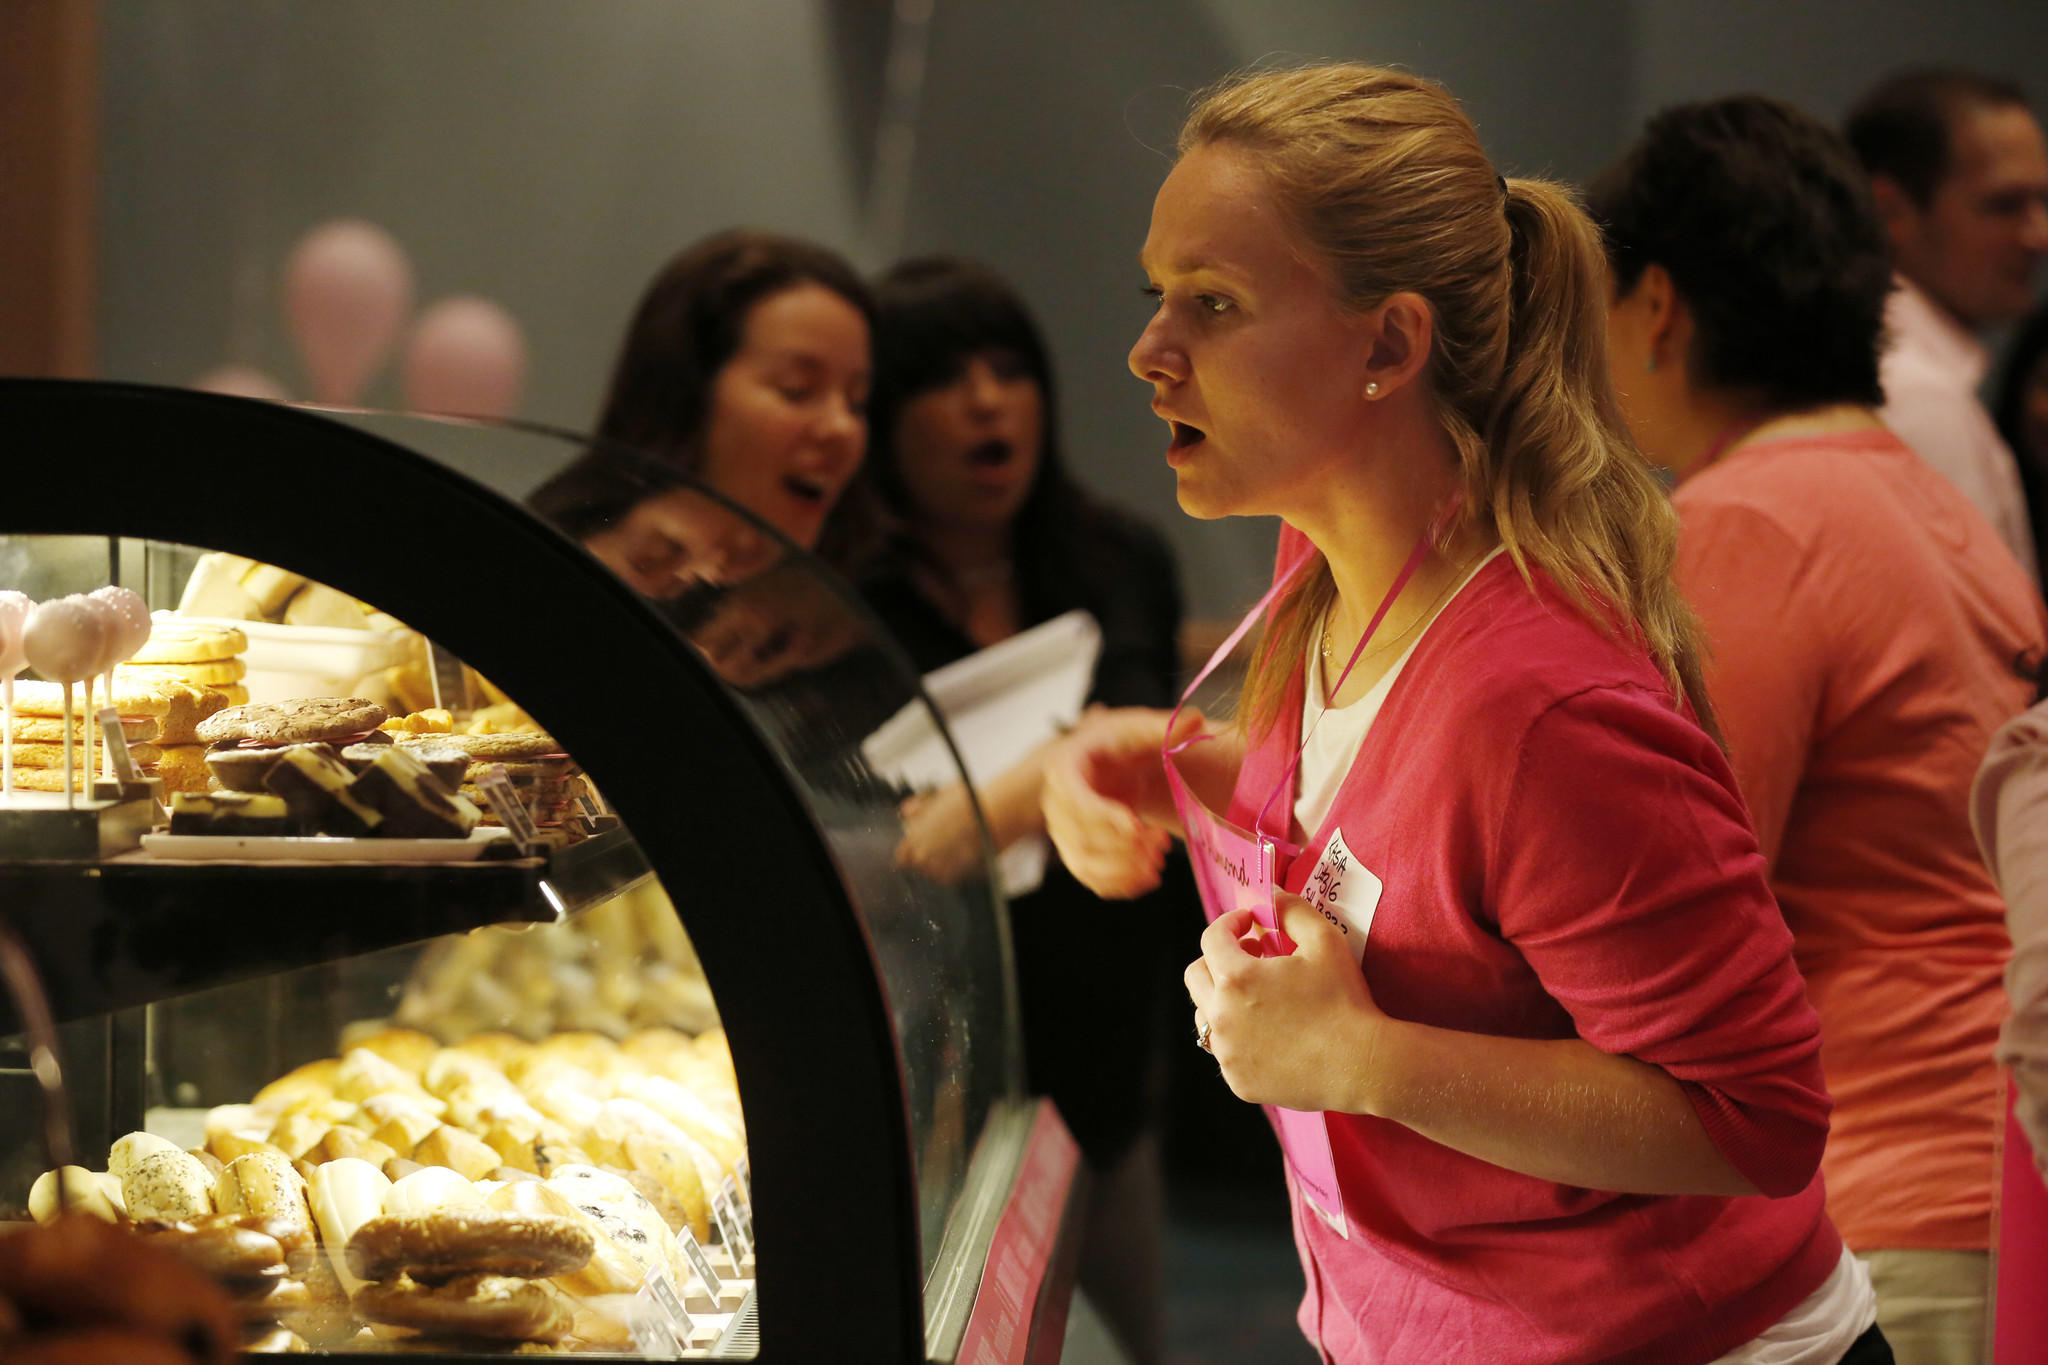 People look at the Starbucks pastry case in suburban Chicago.